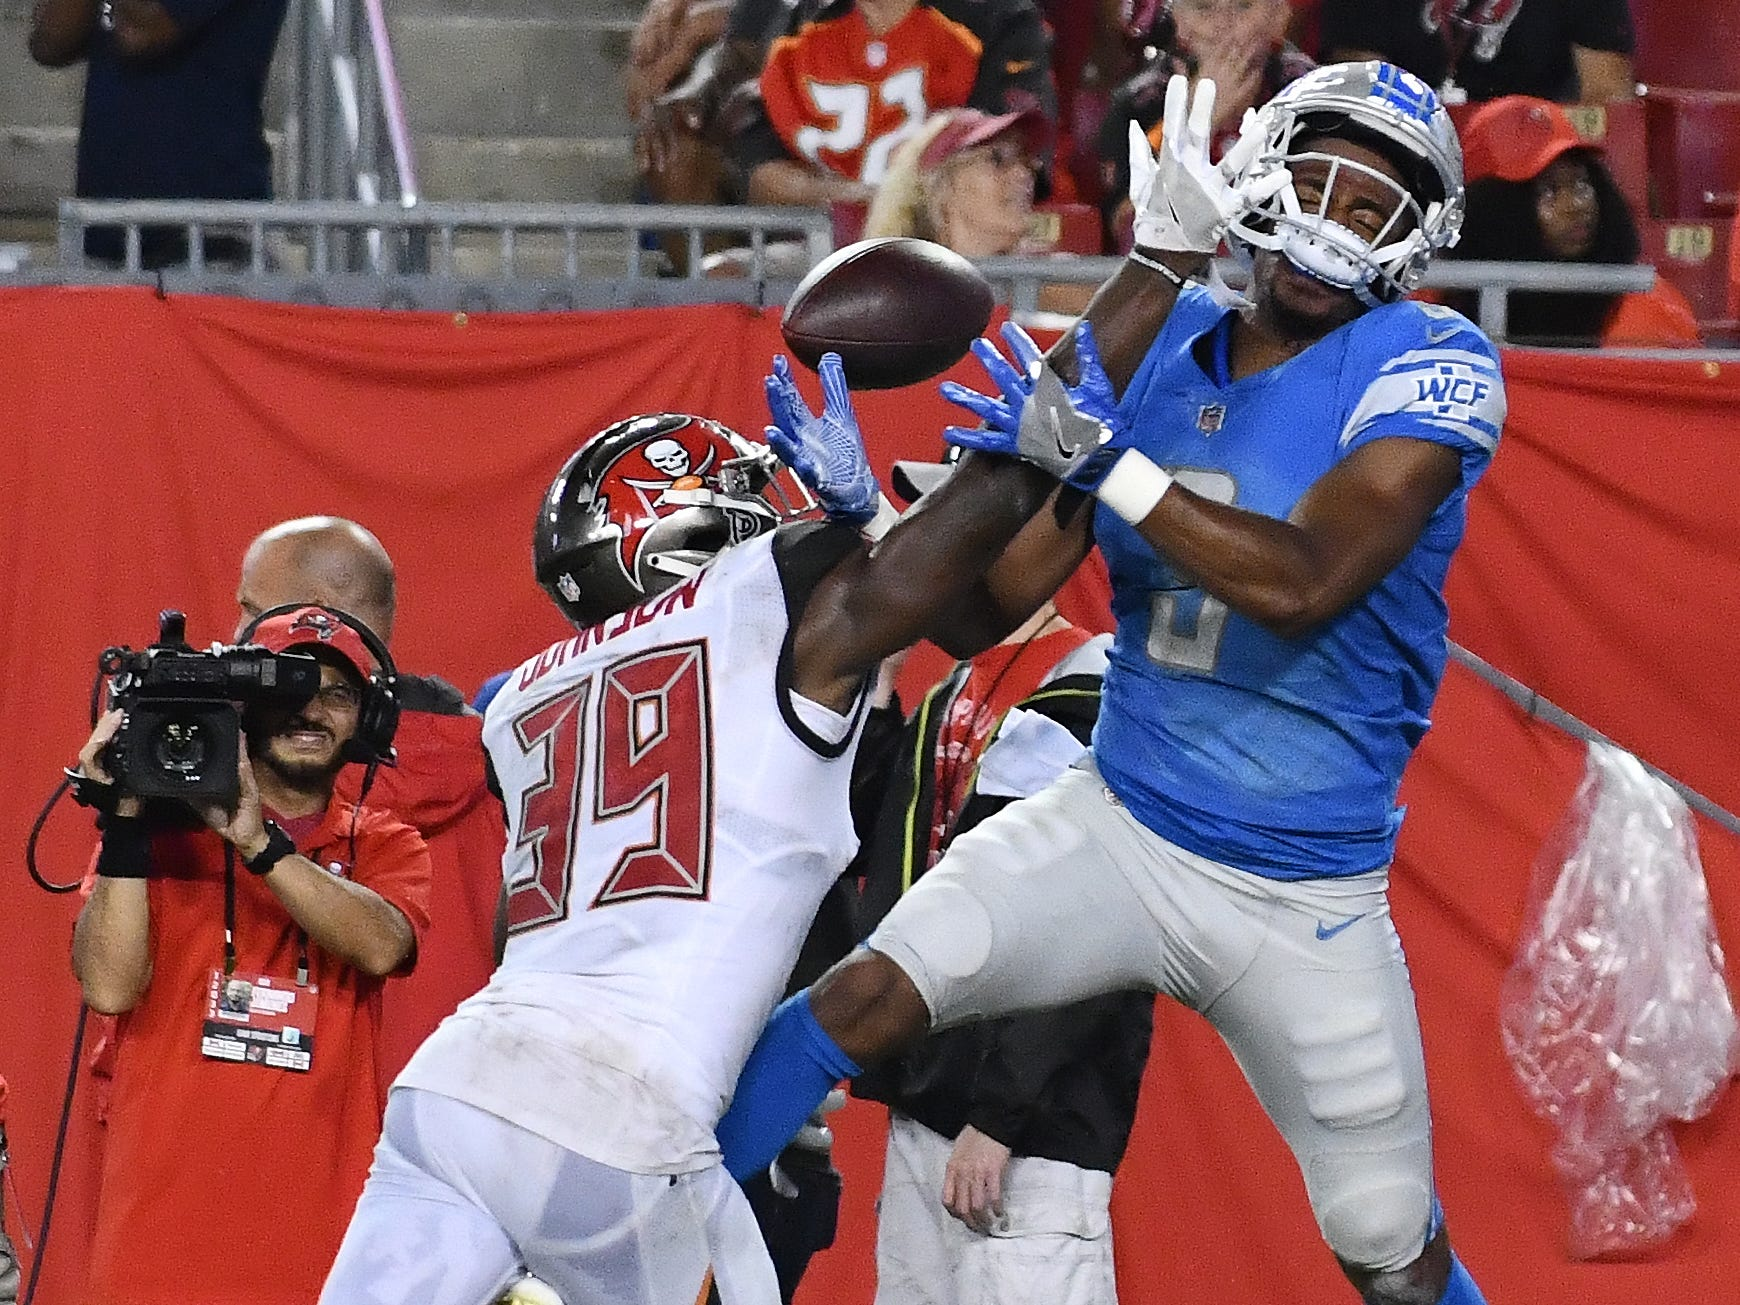 Buccaneers' Isiah Johnson breaks up a pass intended for Lions' Brian Brown in the fourth quarter.